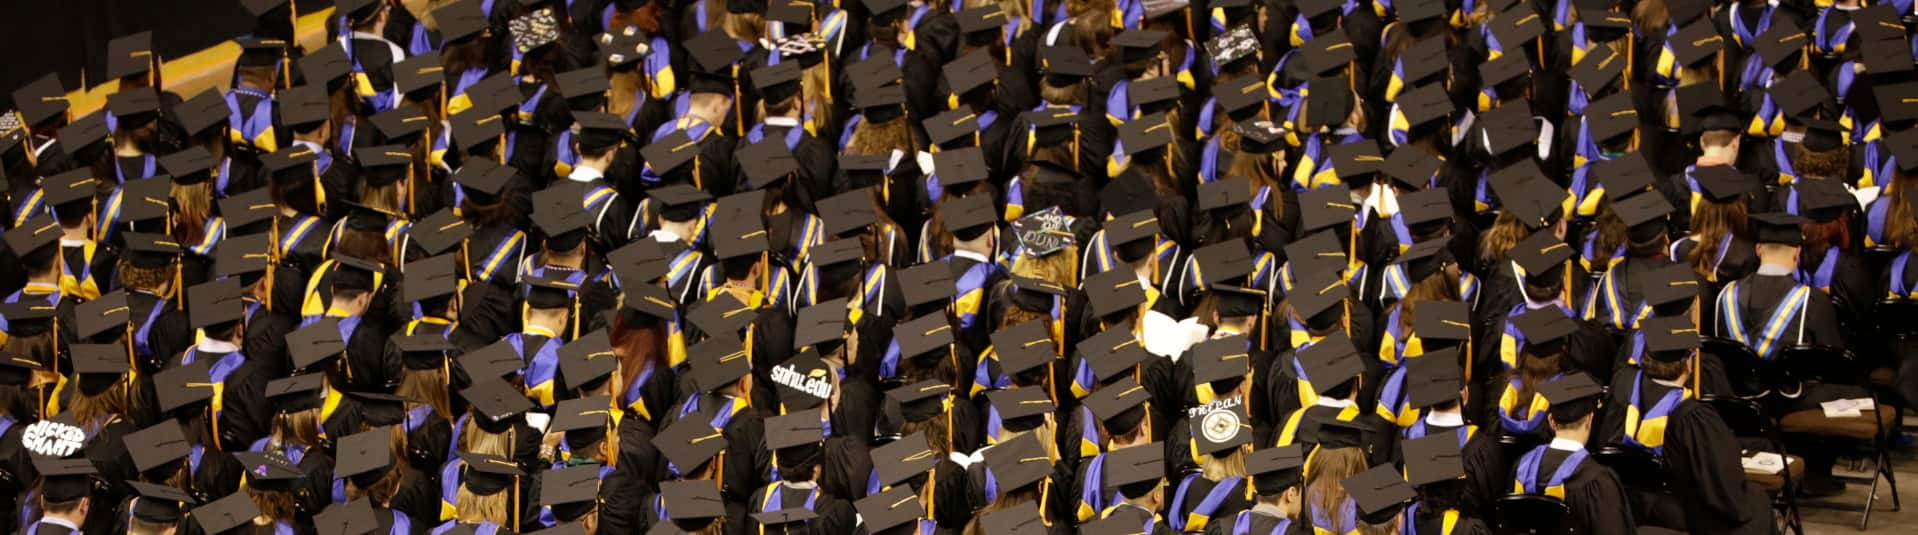 Large group of students wearing caps and gowns at commencement